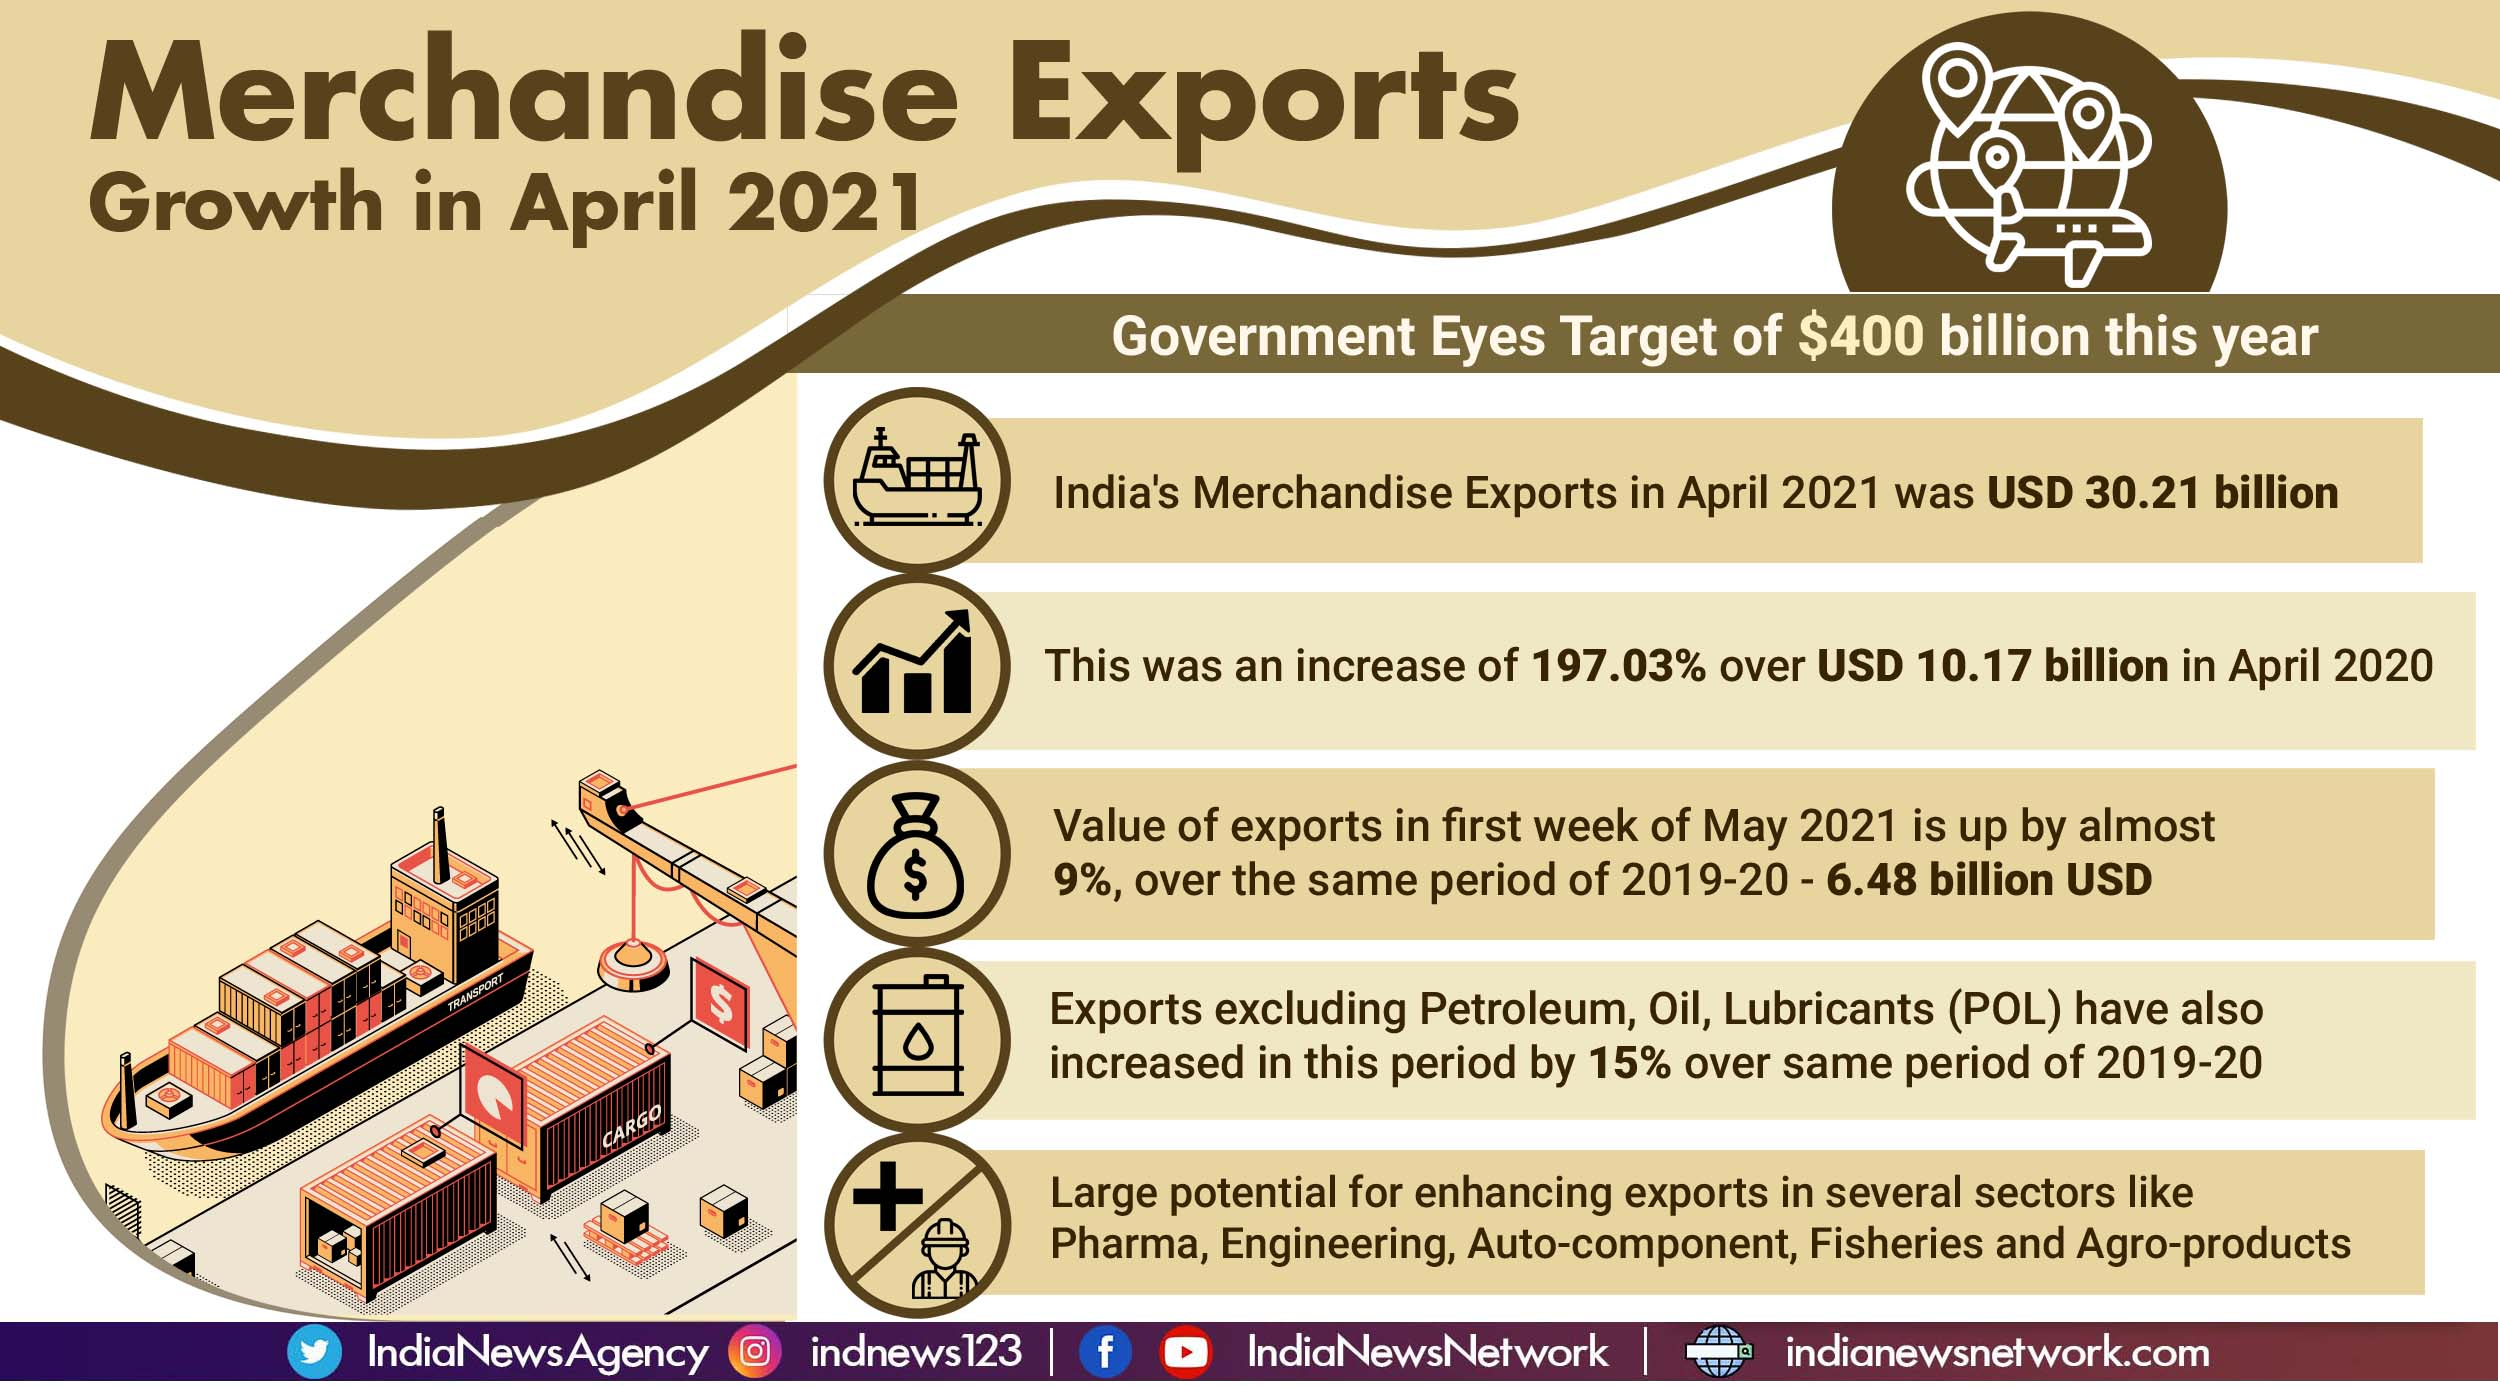 Merchandise exports grow, government eyes target of USD 400 bn this year